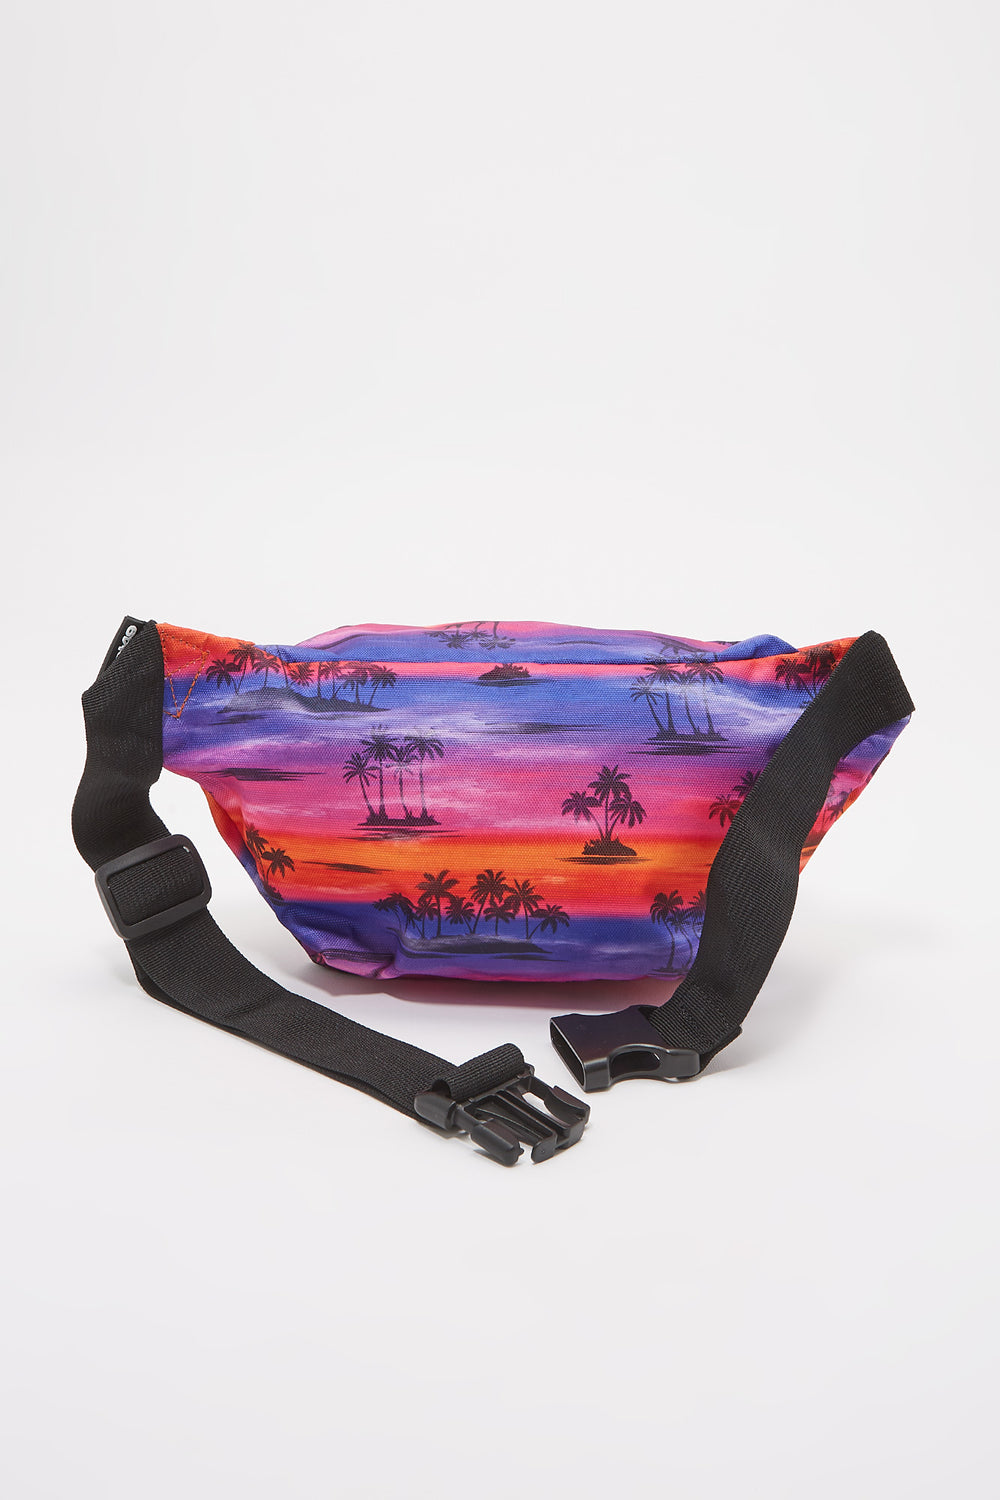 West49 Sunset Fanny Pack Multi